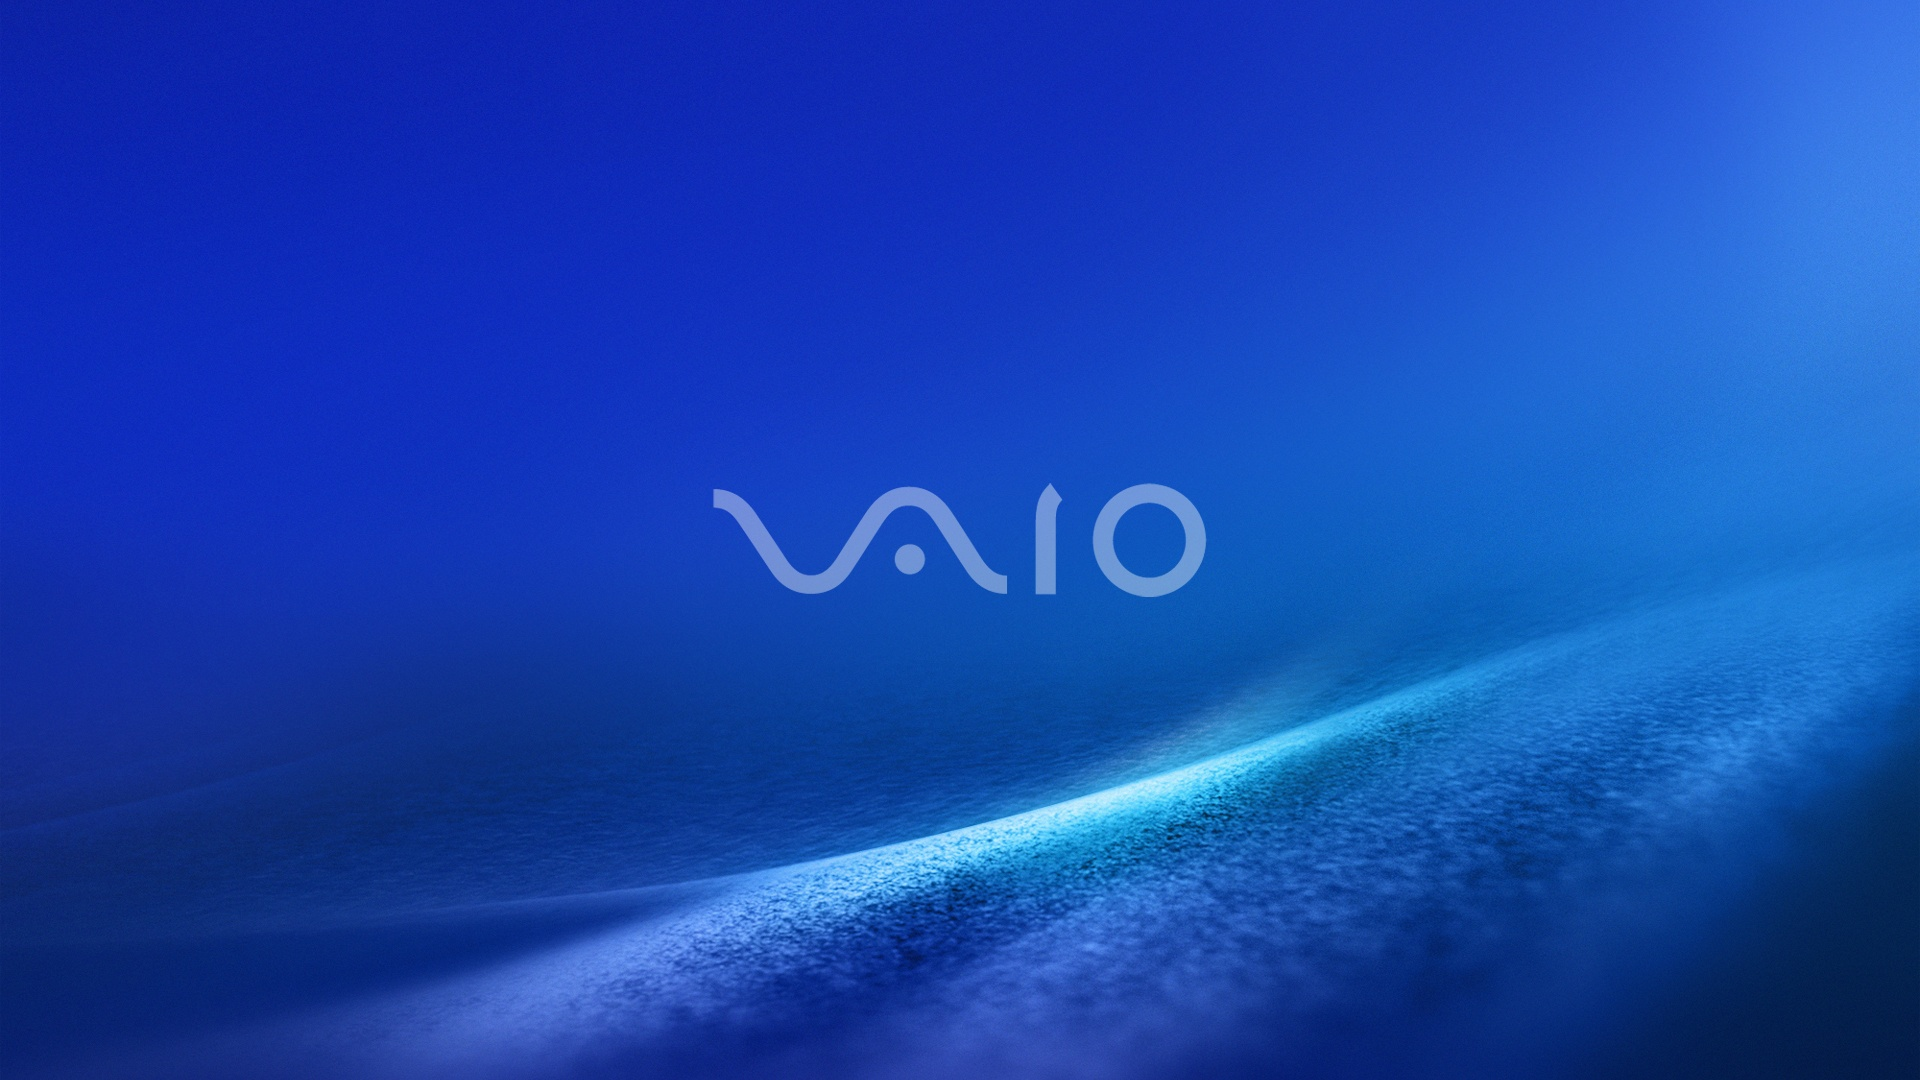 sony wallpaper hd 1080p,blue,sky,azure,text,electric blue